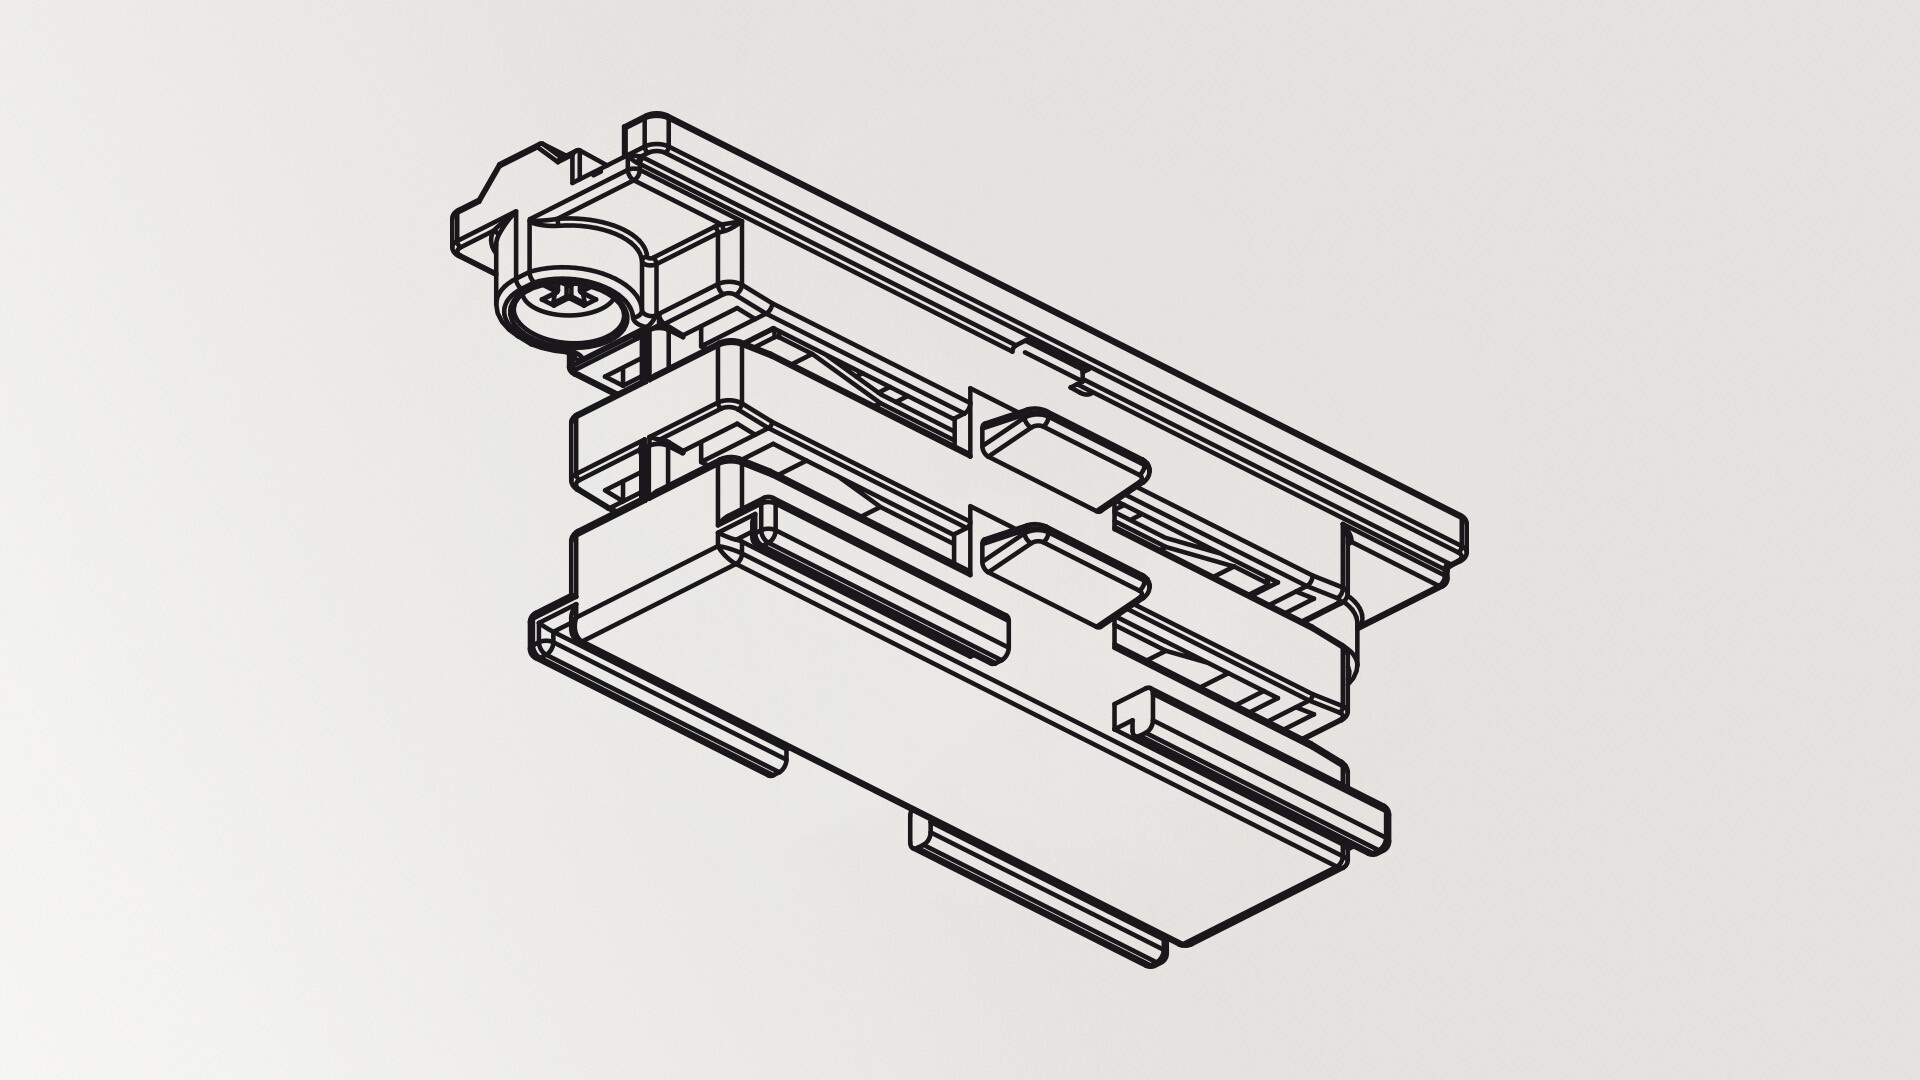 Contact joint rail 3 phase Noir